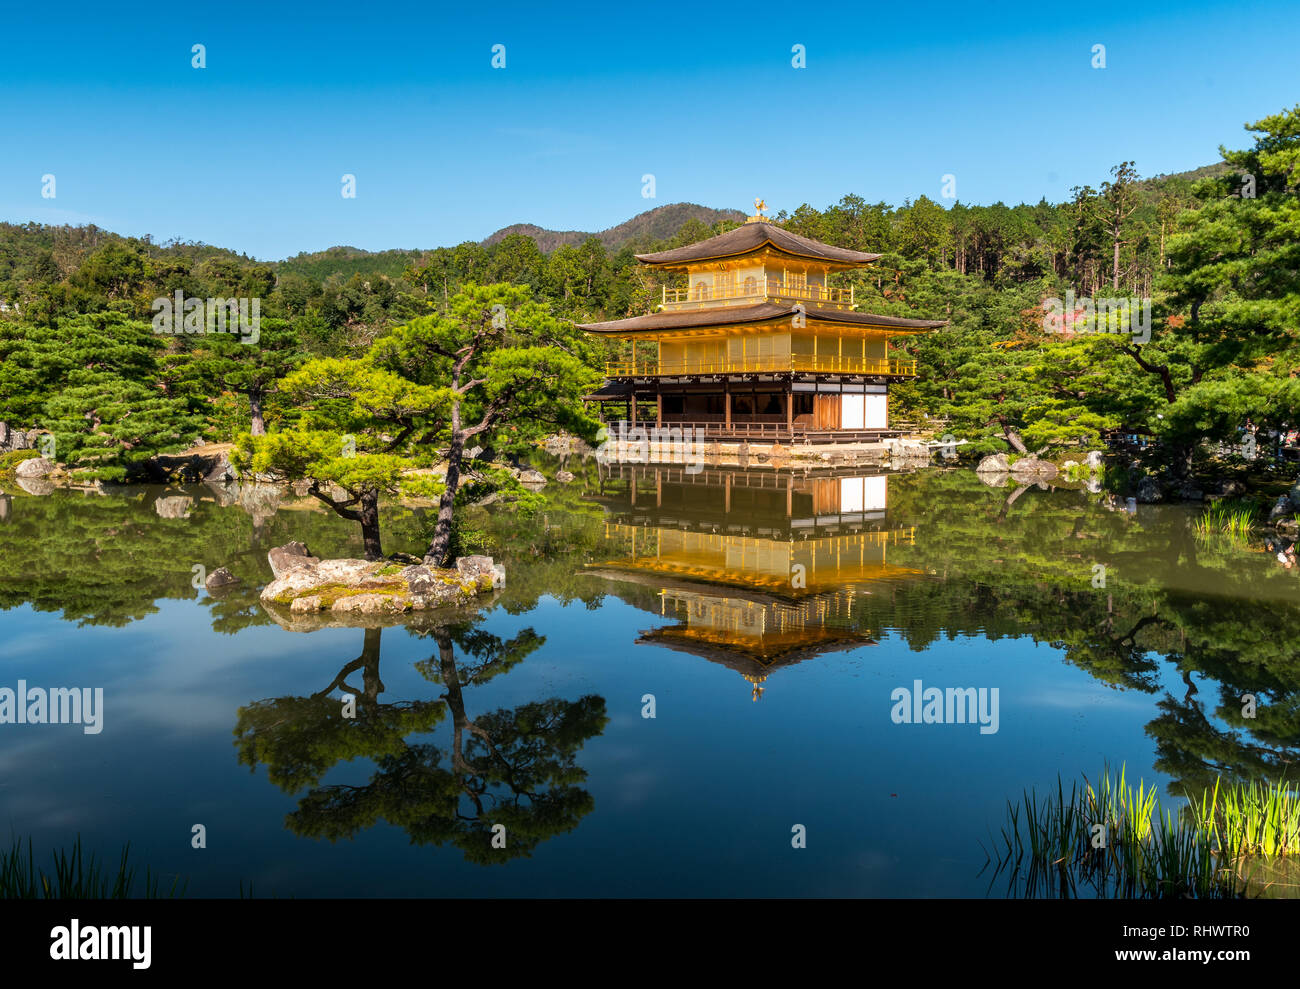 Kinkaku-ji, is a Zen Buddhist temple in Kyoto, Japan. It is one of the most popular buildings in Japan, attracting a large number of visitors annually - Stock Image